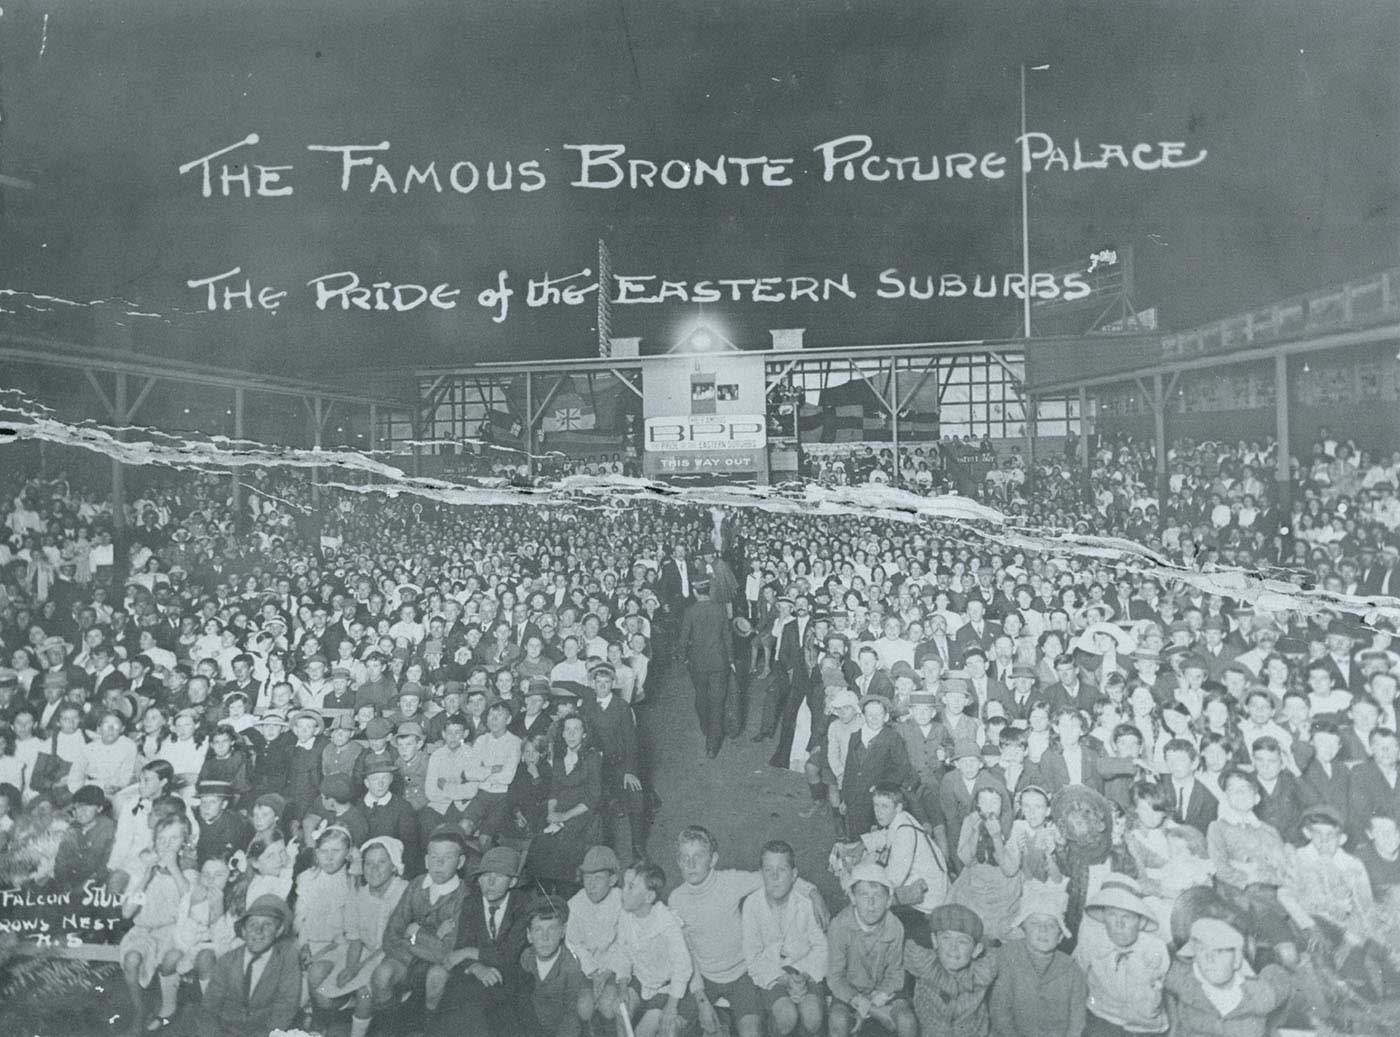 Black and white photo of a large crowd of people in an open air cinema with hand written text 'THE FAMOUS BRONTE PICTURE PALACE THE PRIDE OF THE EASTERN SUBURBS',